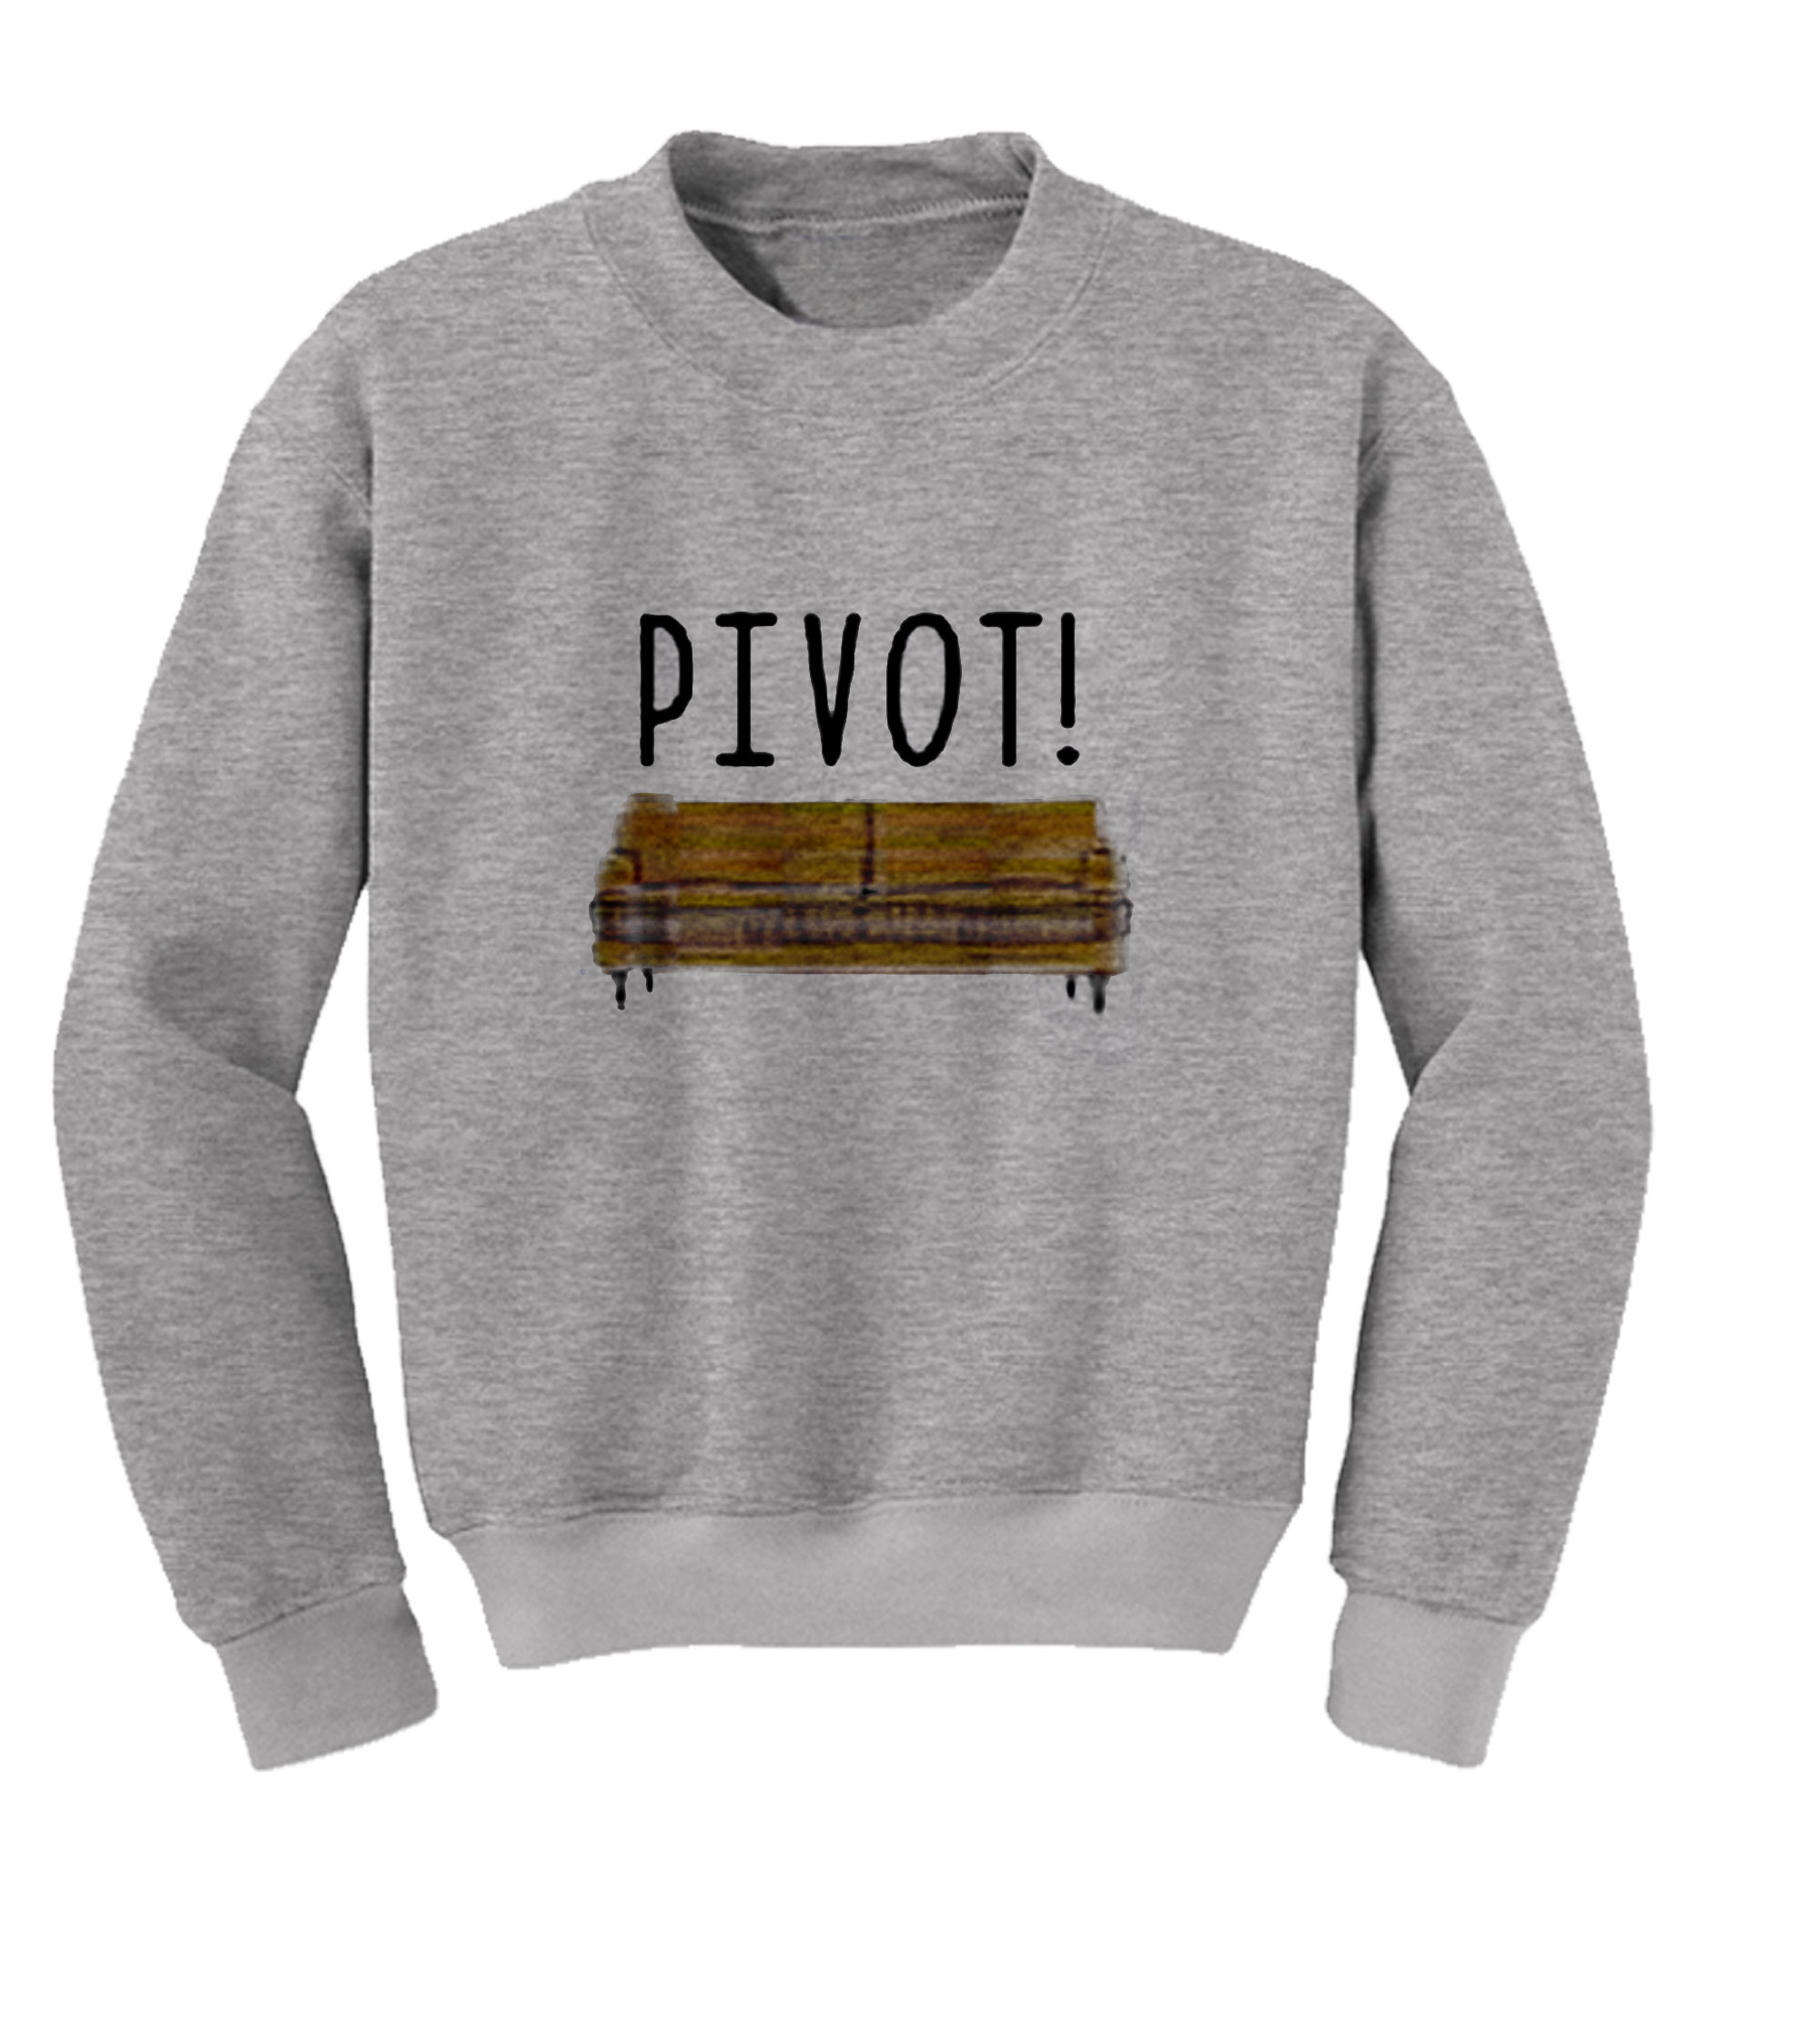 Cool Pivot Sweatshirt For Today